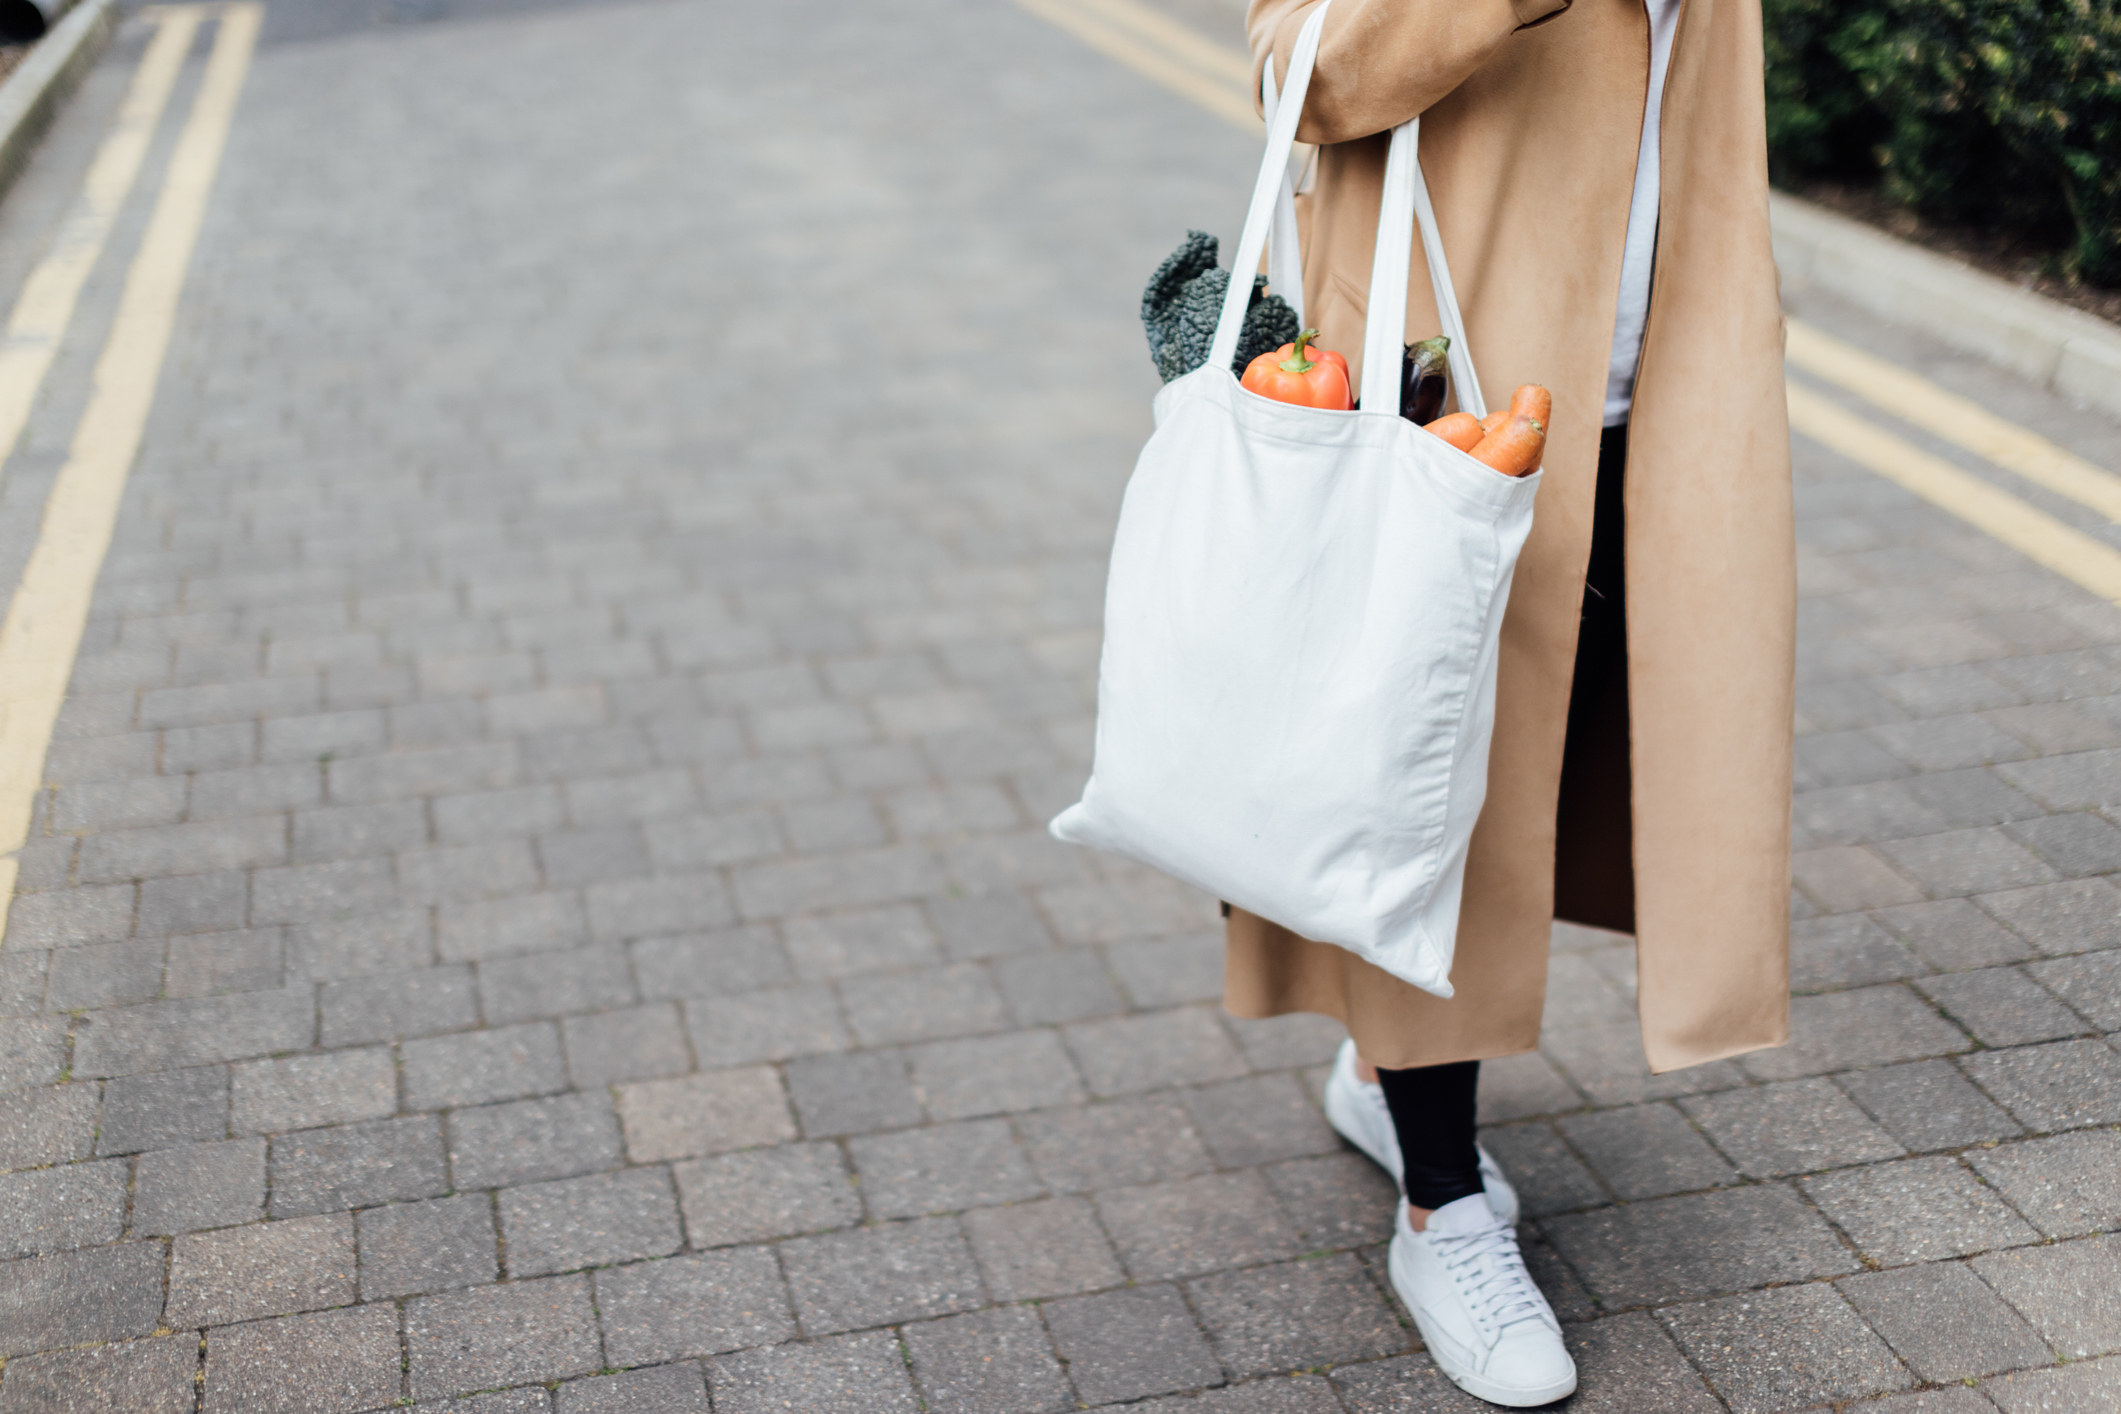 A person wearing a long coat, pants, and sneakers as they carry a reusable bag filled with groceries